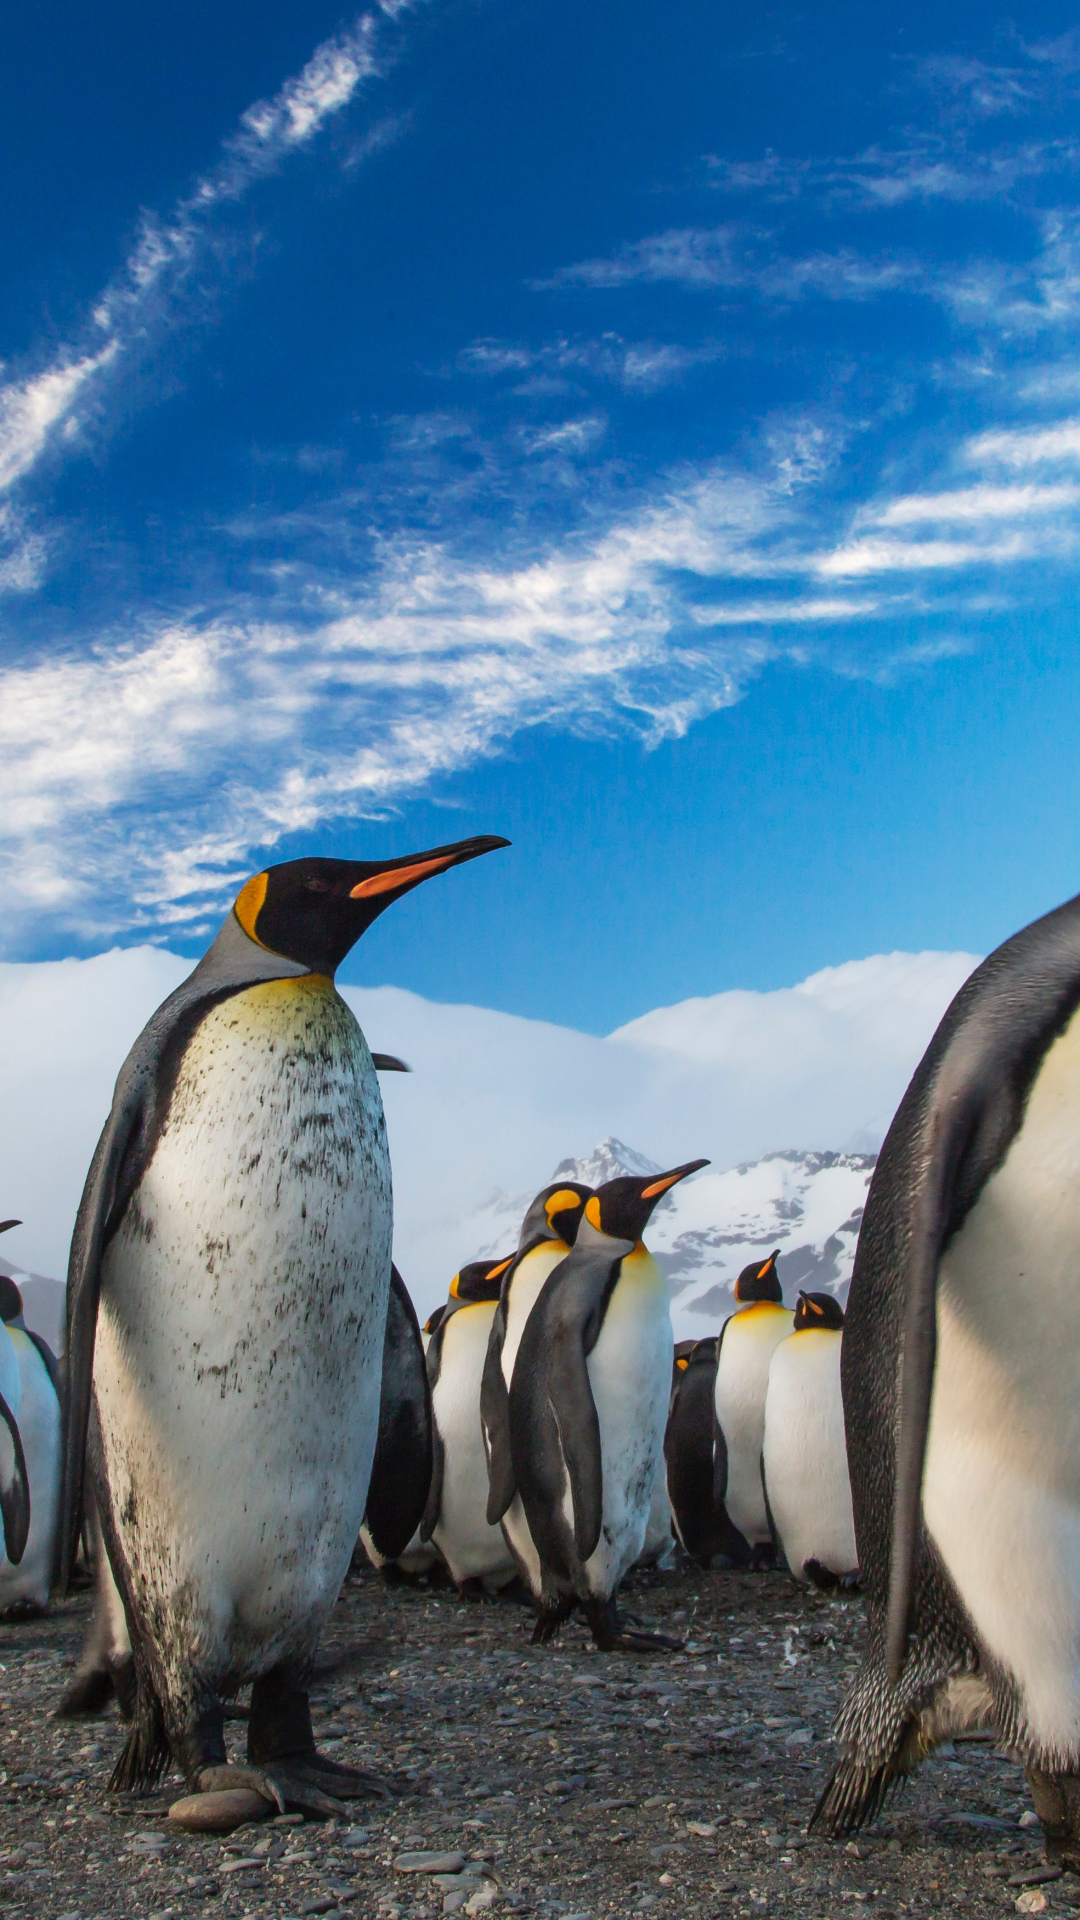 king penguin procession iphone wallpaper - idrop news